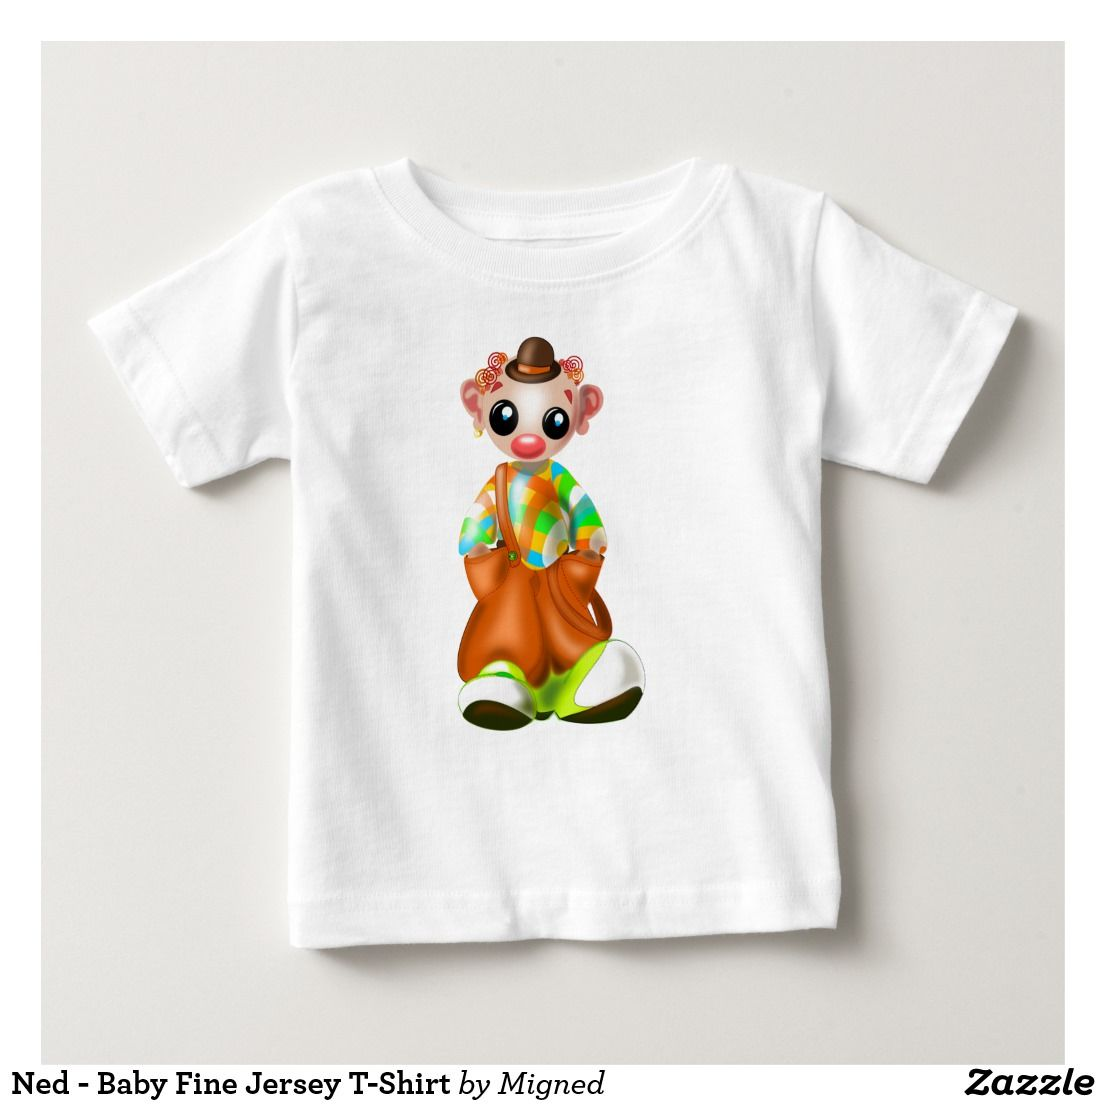 Ned - Baby Fine Jersey T-Shirt